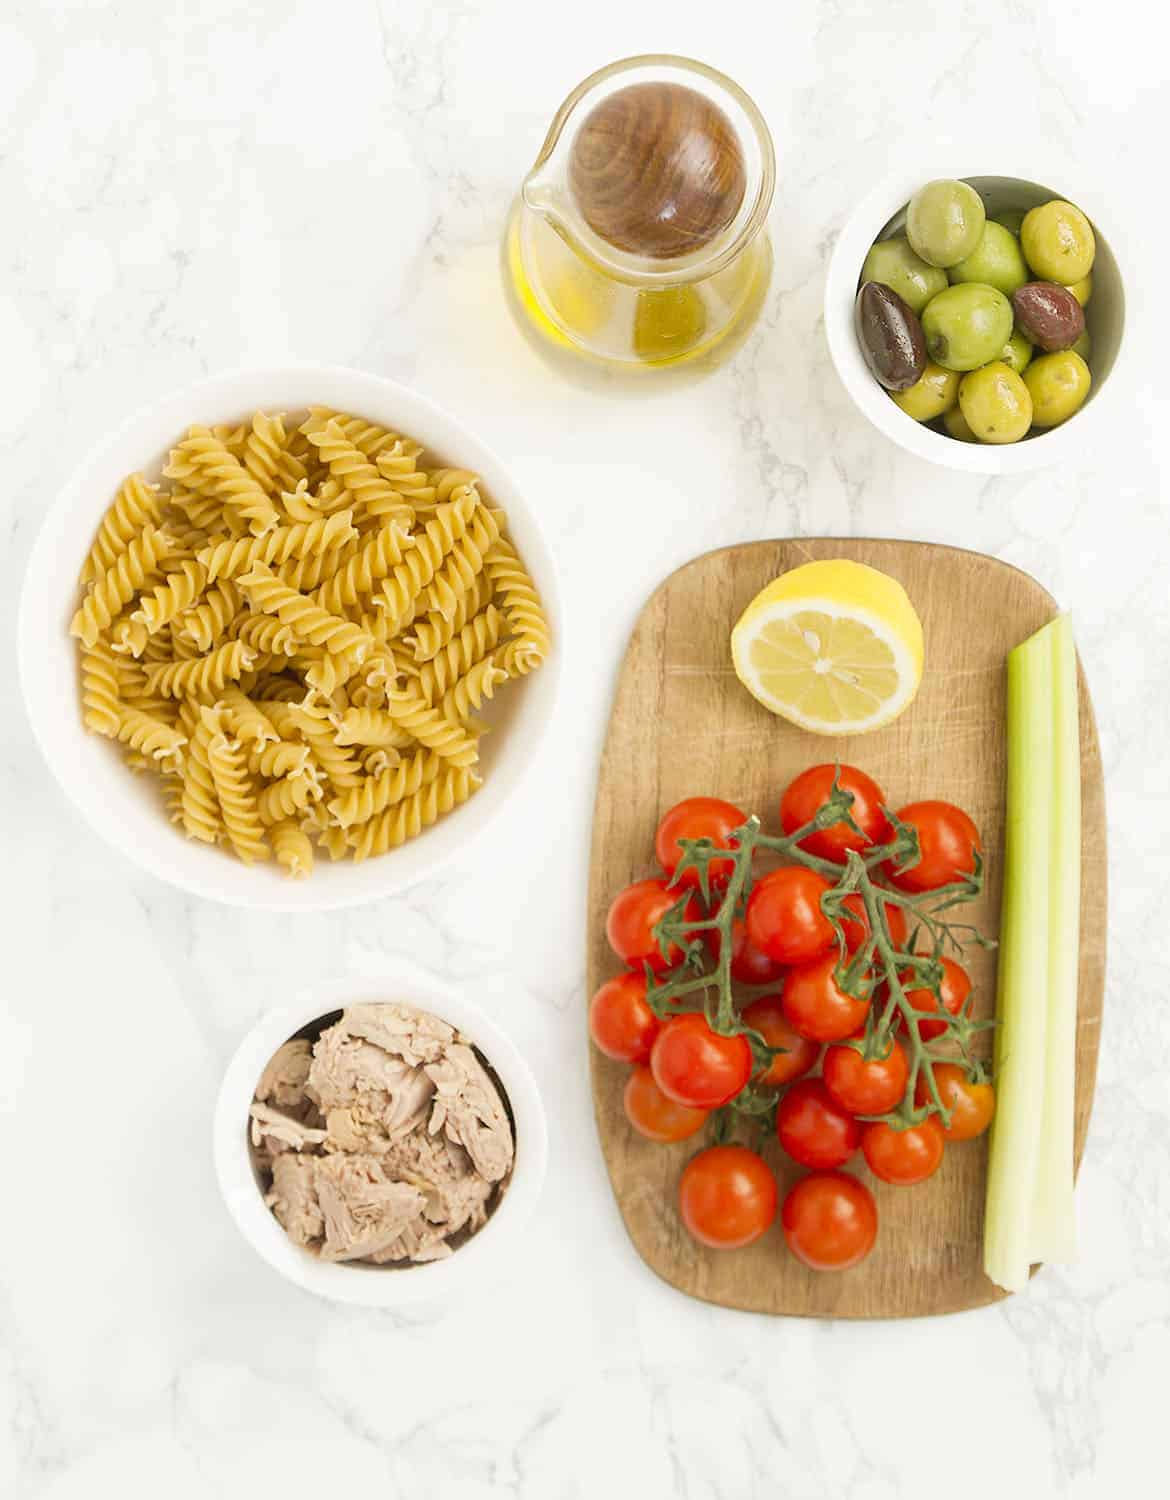 The ingredients for this tuna pasta salad are arranged on a white marble table and a wooden chopping board.